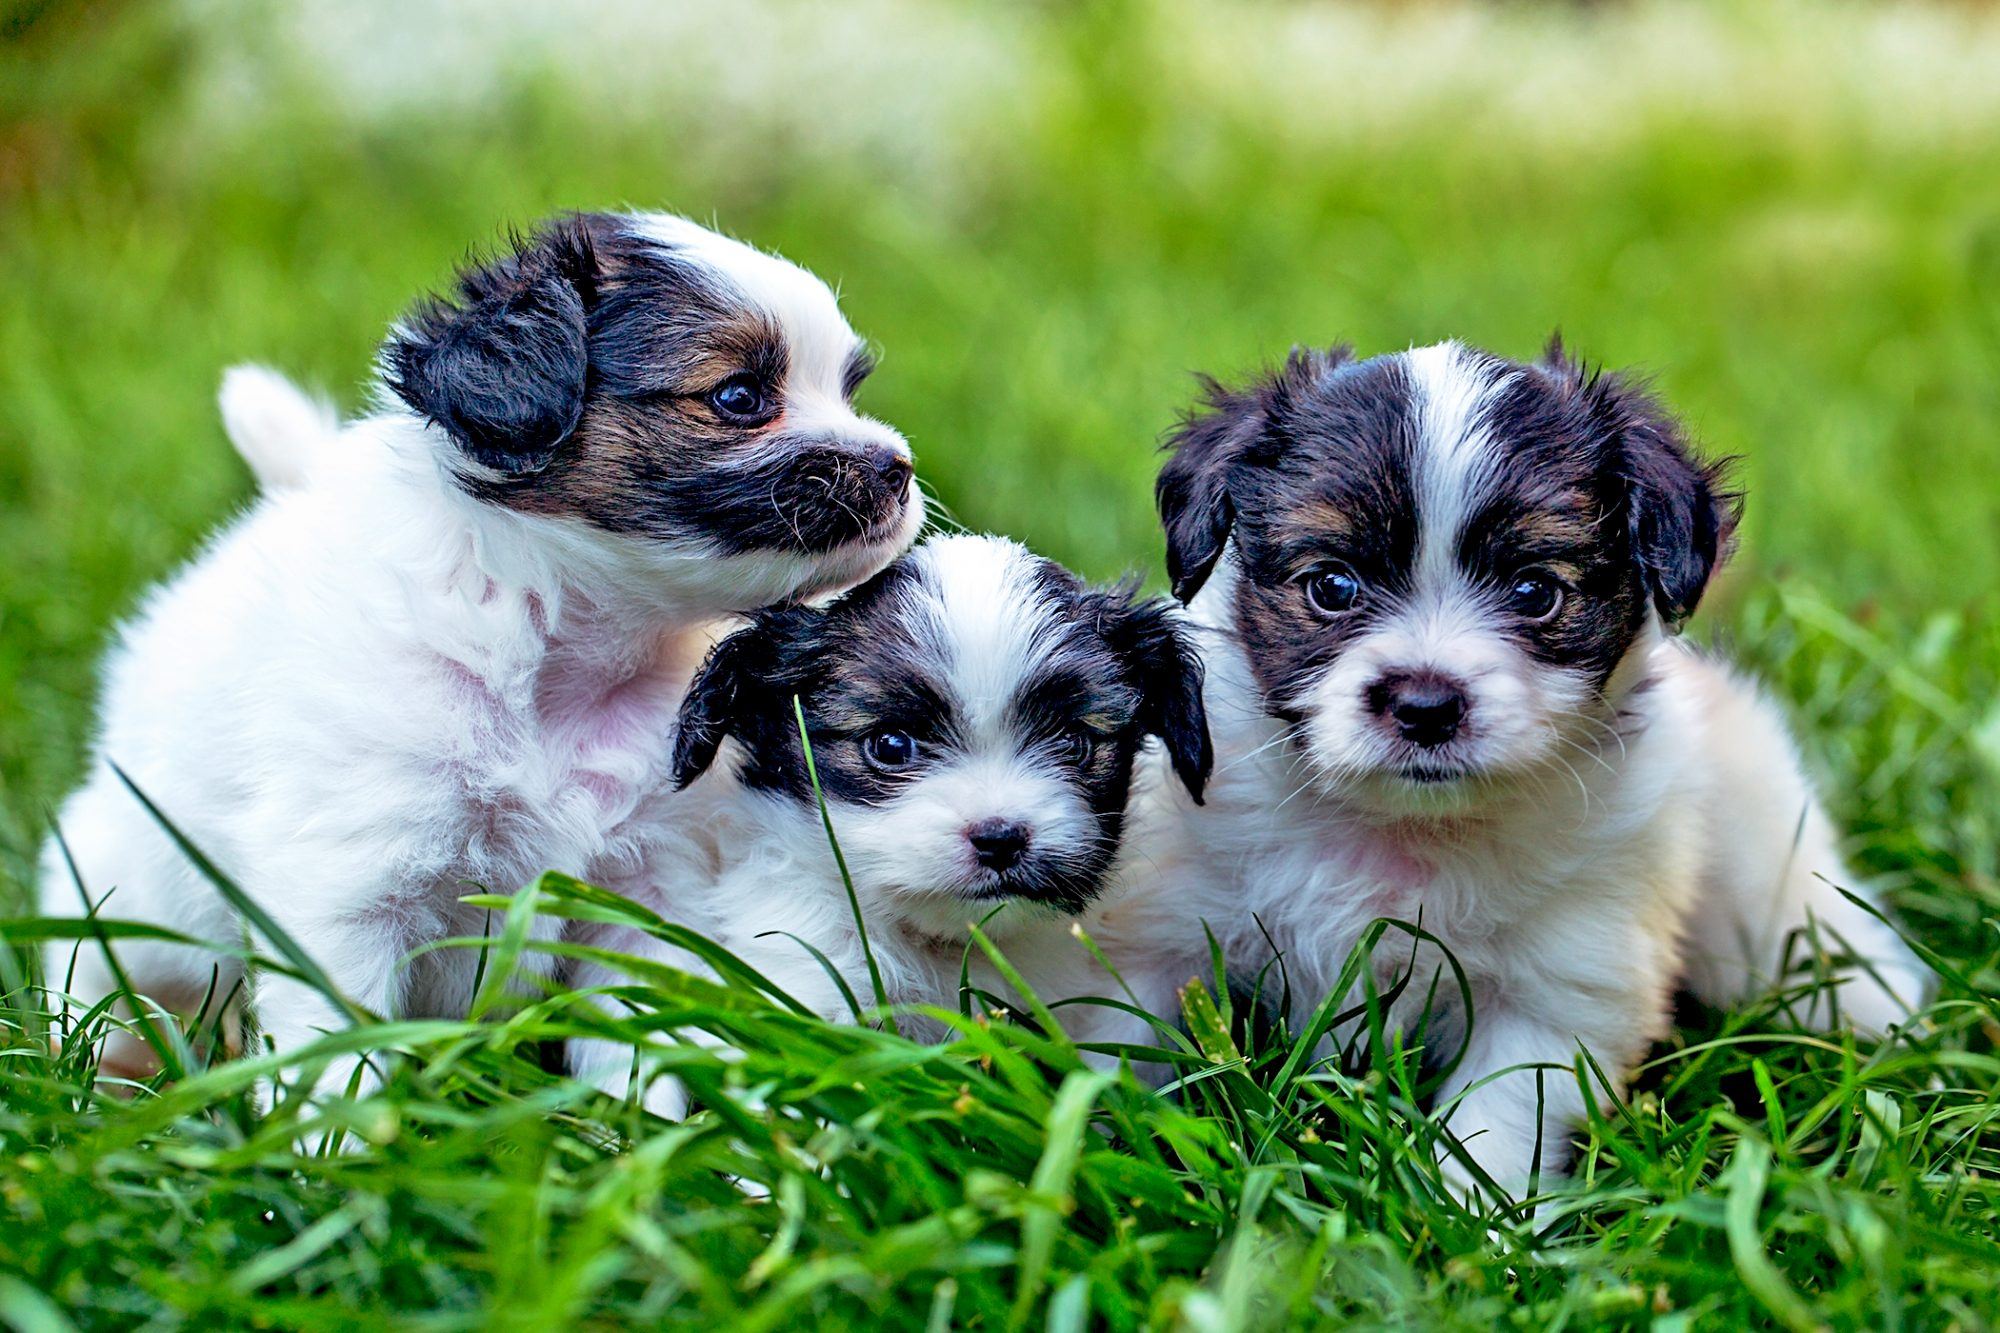 three black and white papillon puppies sitting together in grass